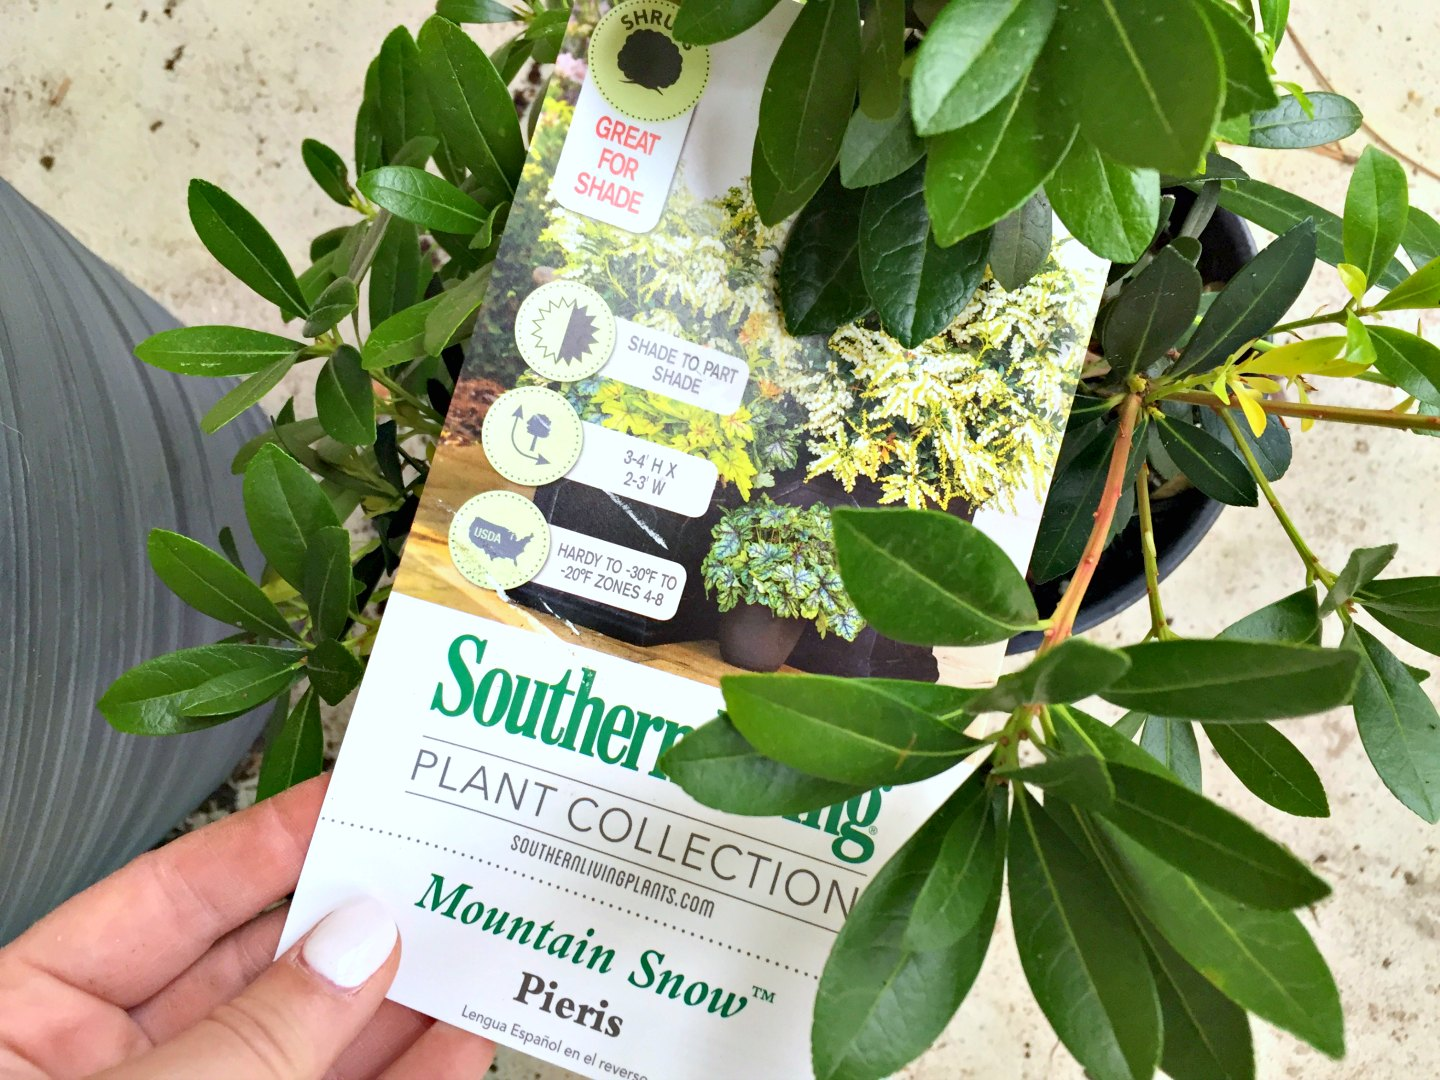 southern living plant collection mountain snow pieris - great for shade containers